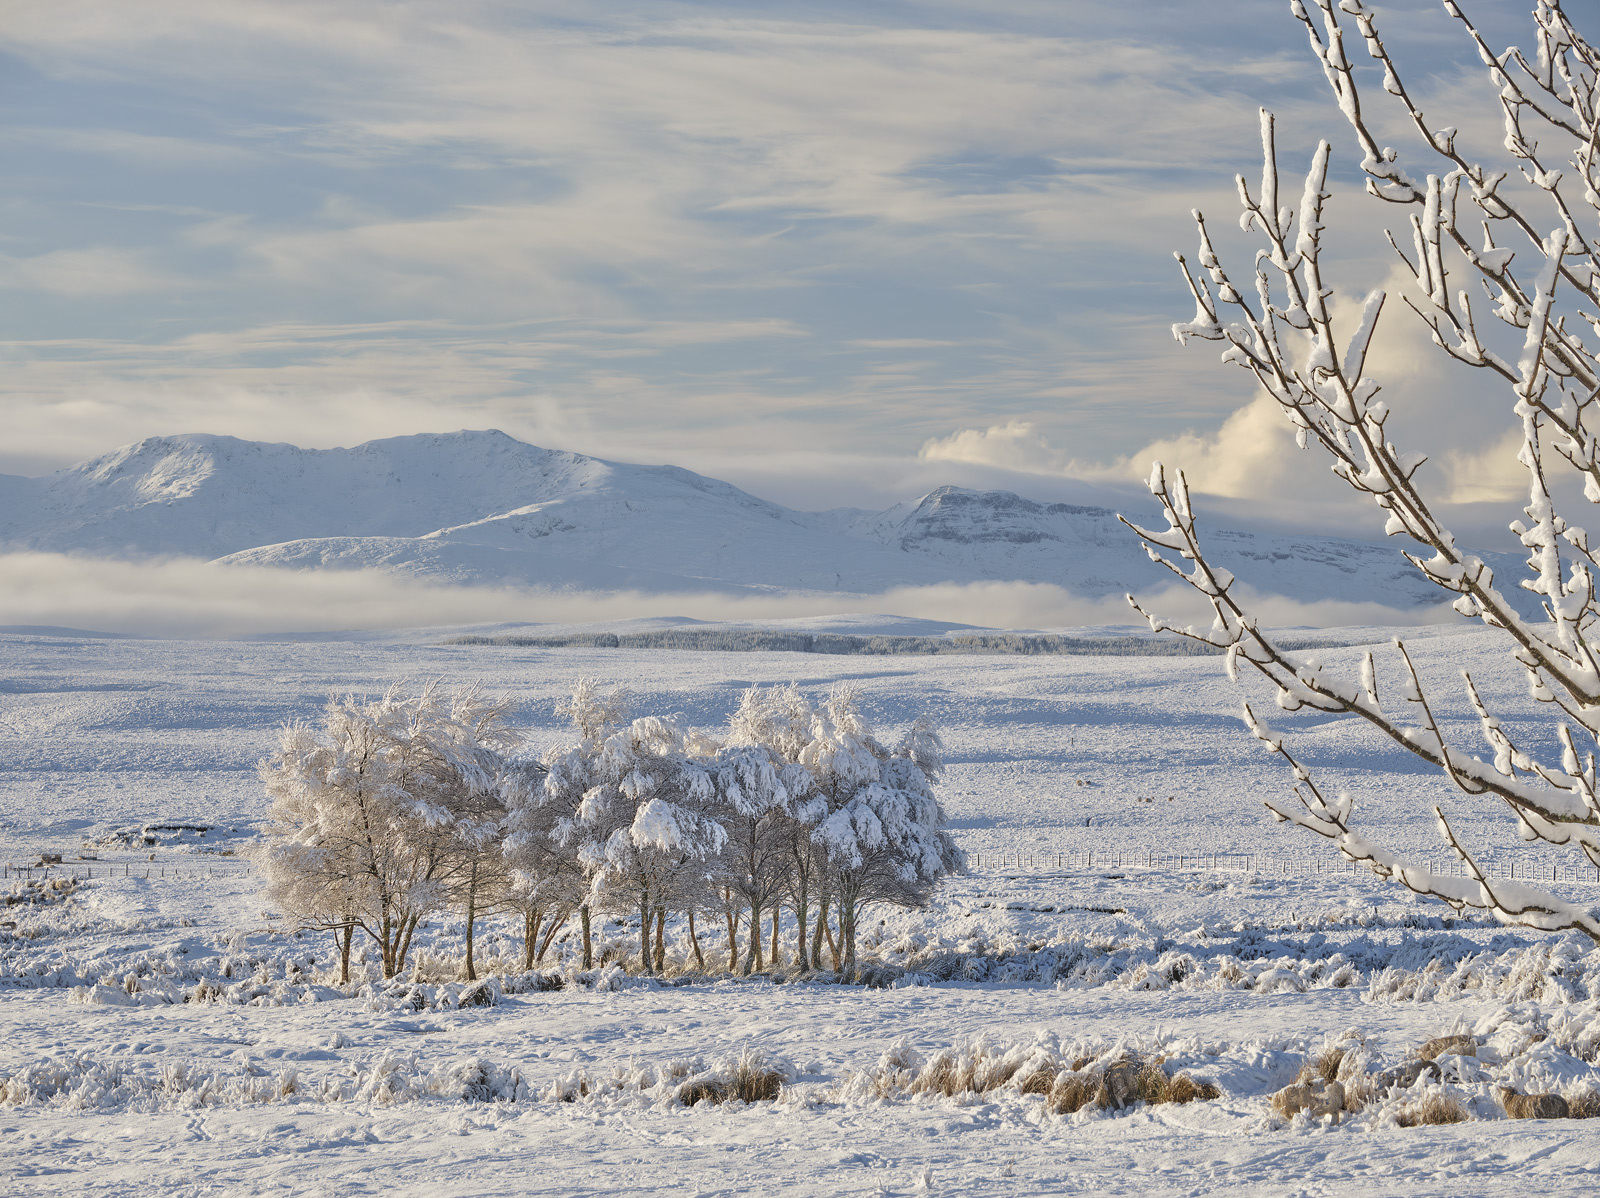 The first opportunity to capture some winter weather in Scotland occurred this year and I seized it by heading up the Altnaharra...